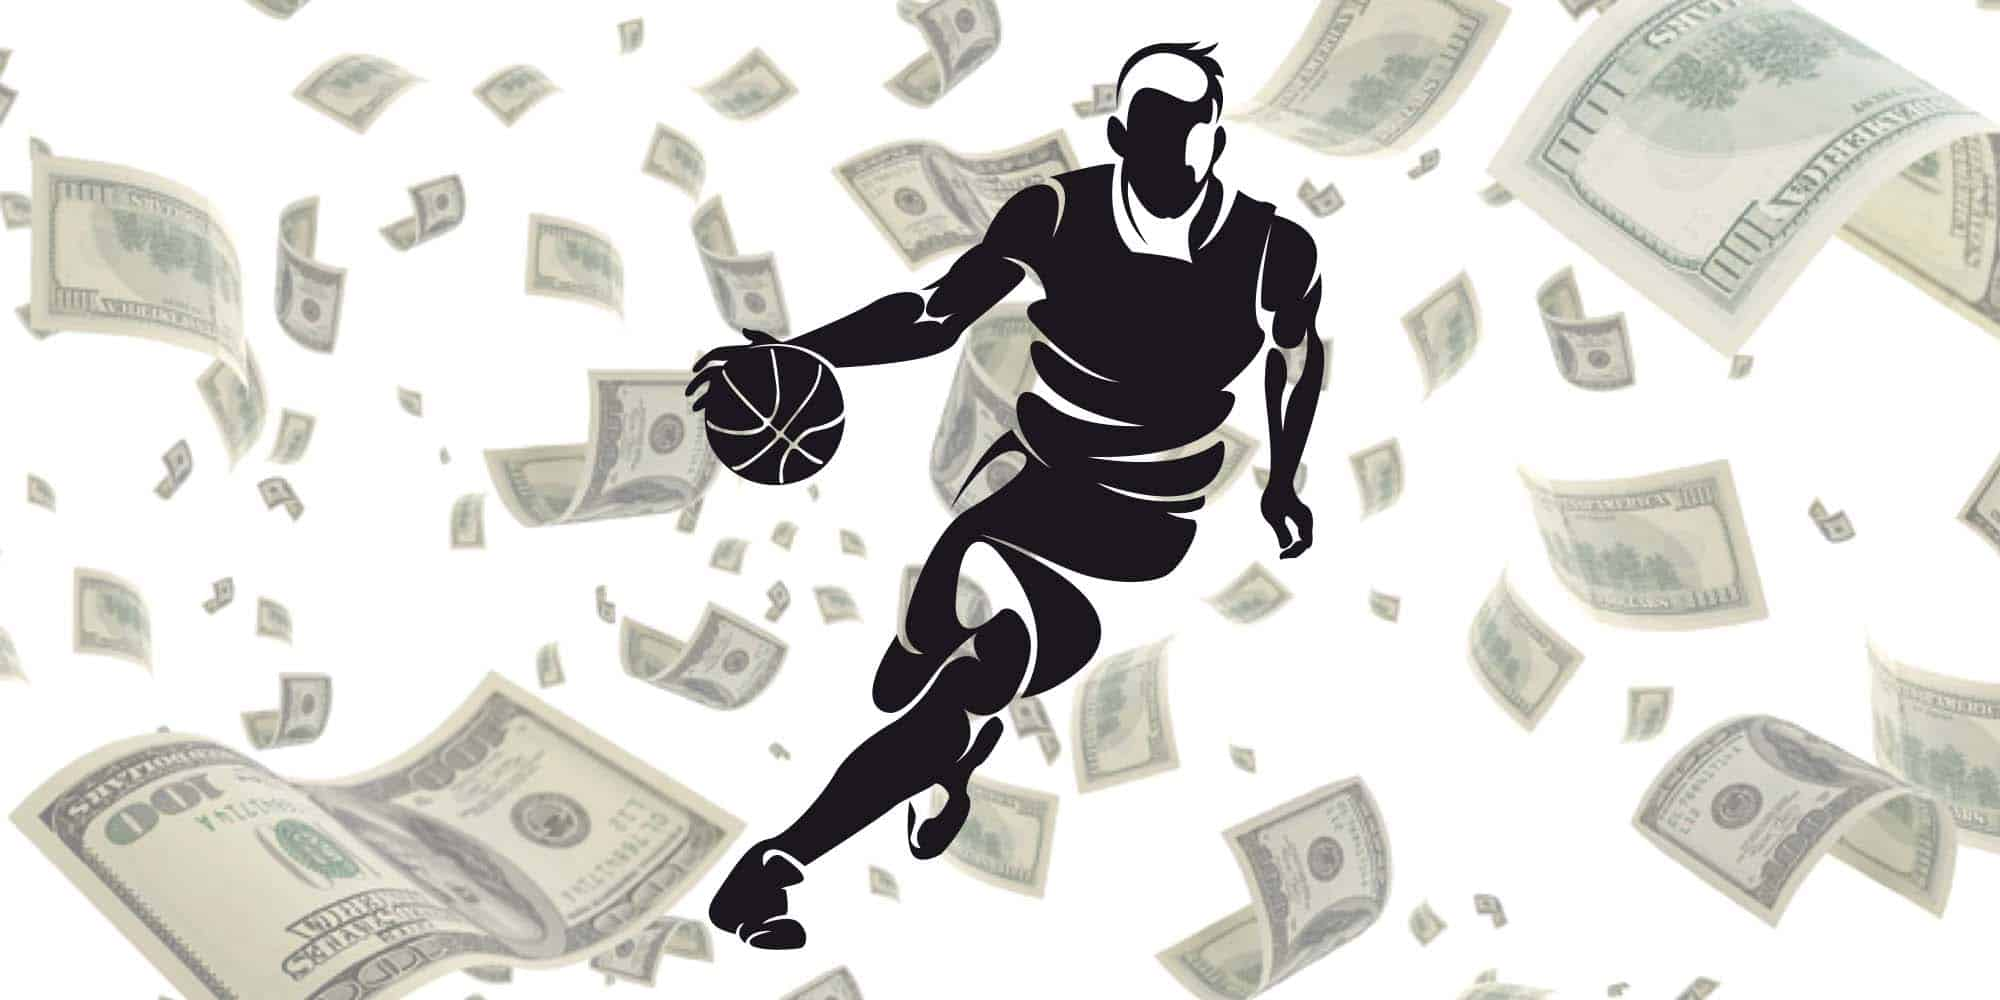 nba player with money